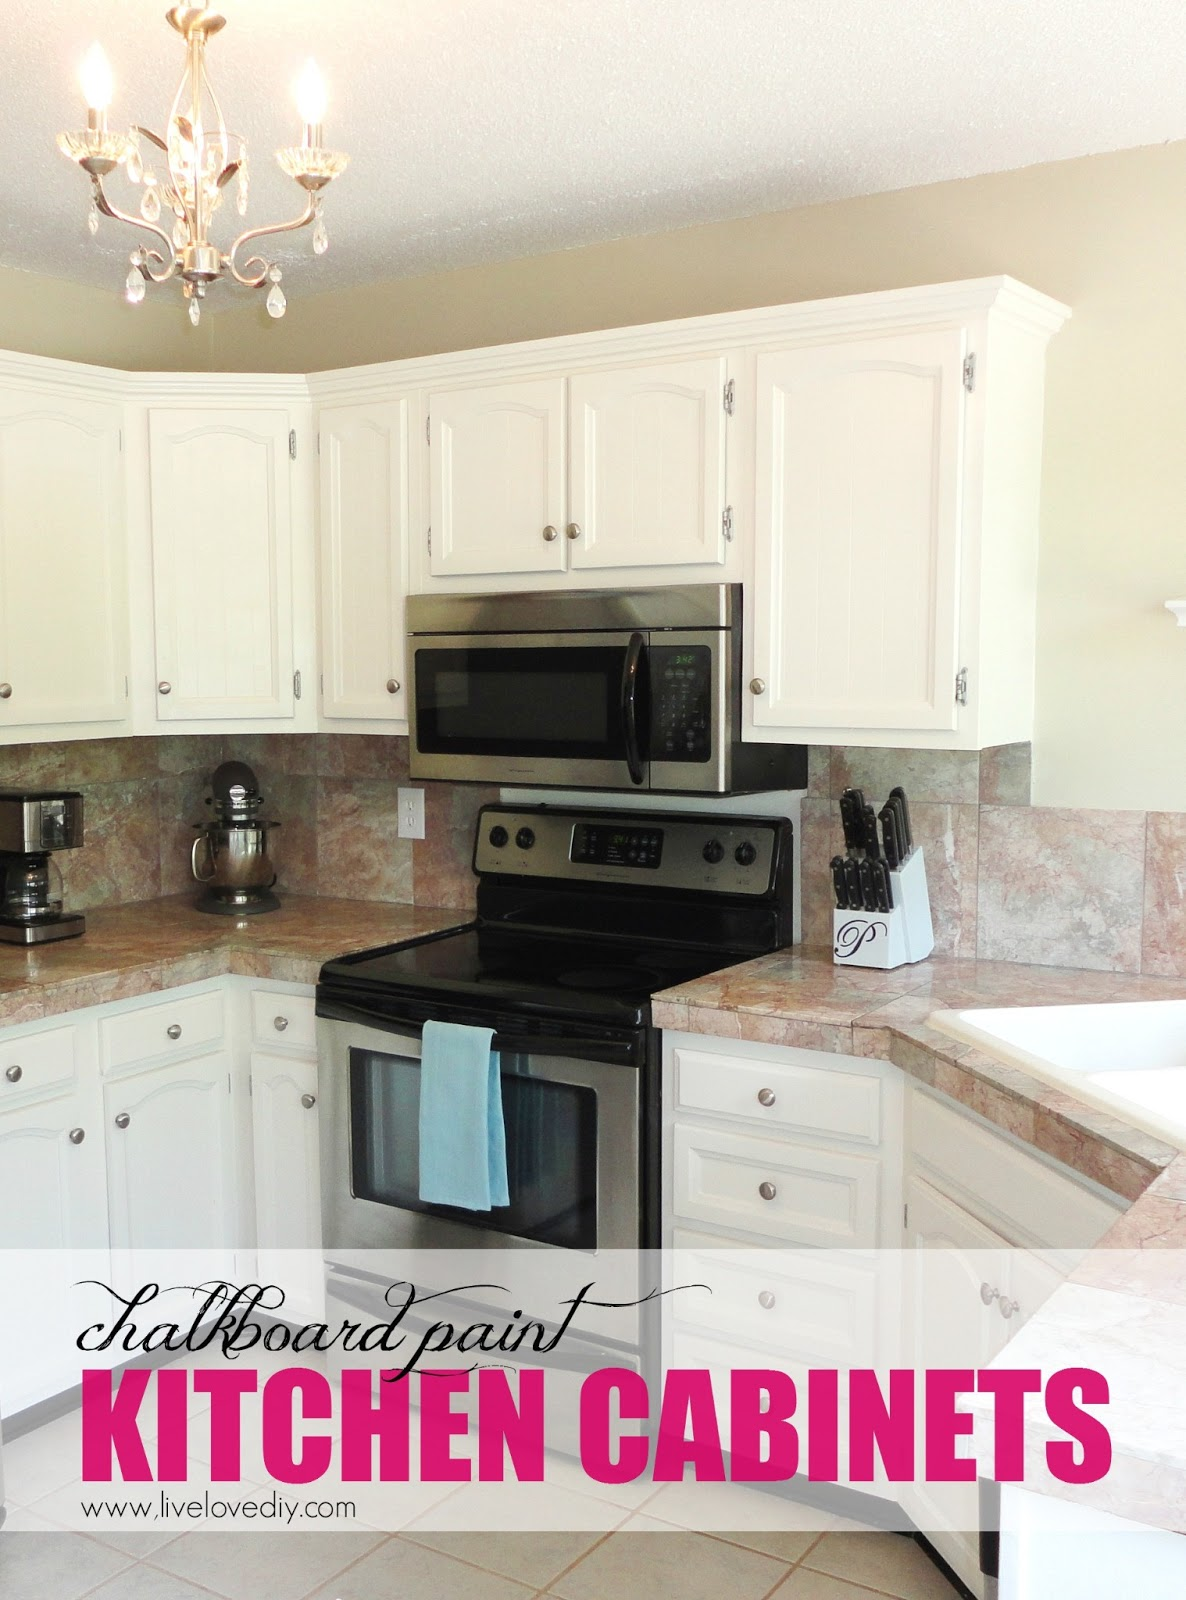 kitchen cabinet chalk paint makeover kitchen cabinet painting The Chalkboard Paint Kitchen Cabinet Makeover